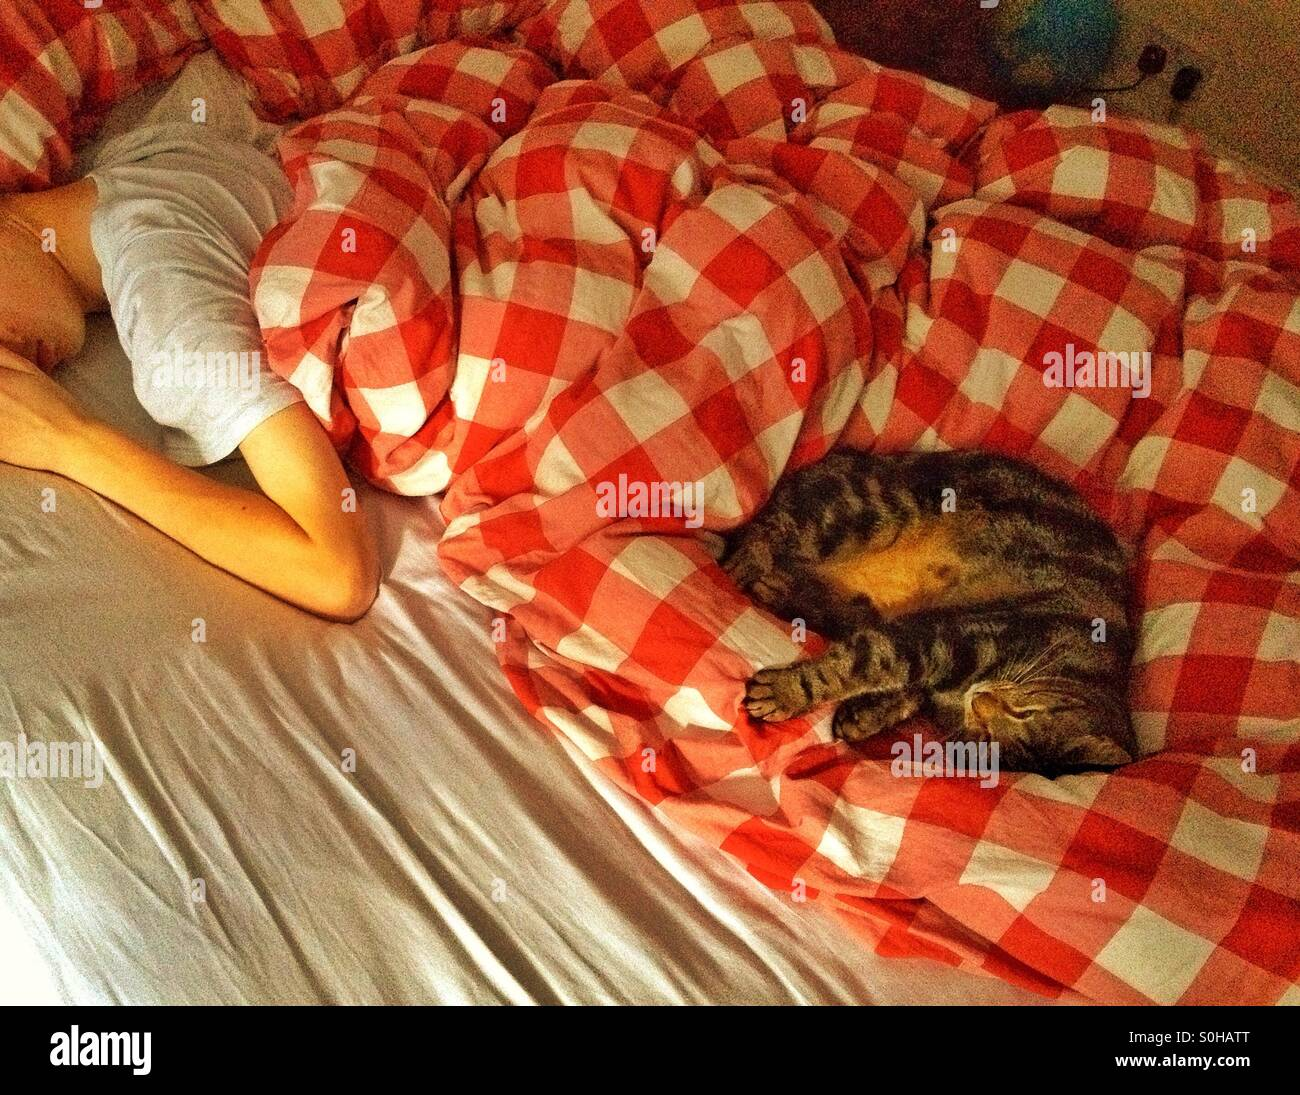 A cat and a boy sleeping on a bed - Stock Image